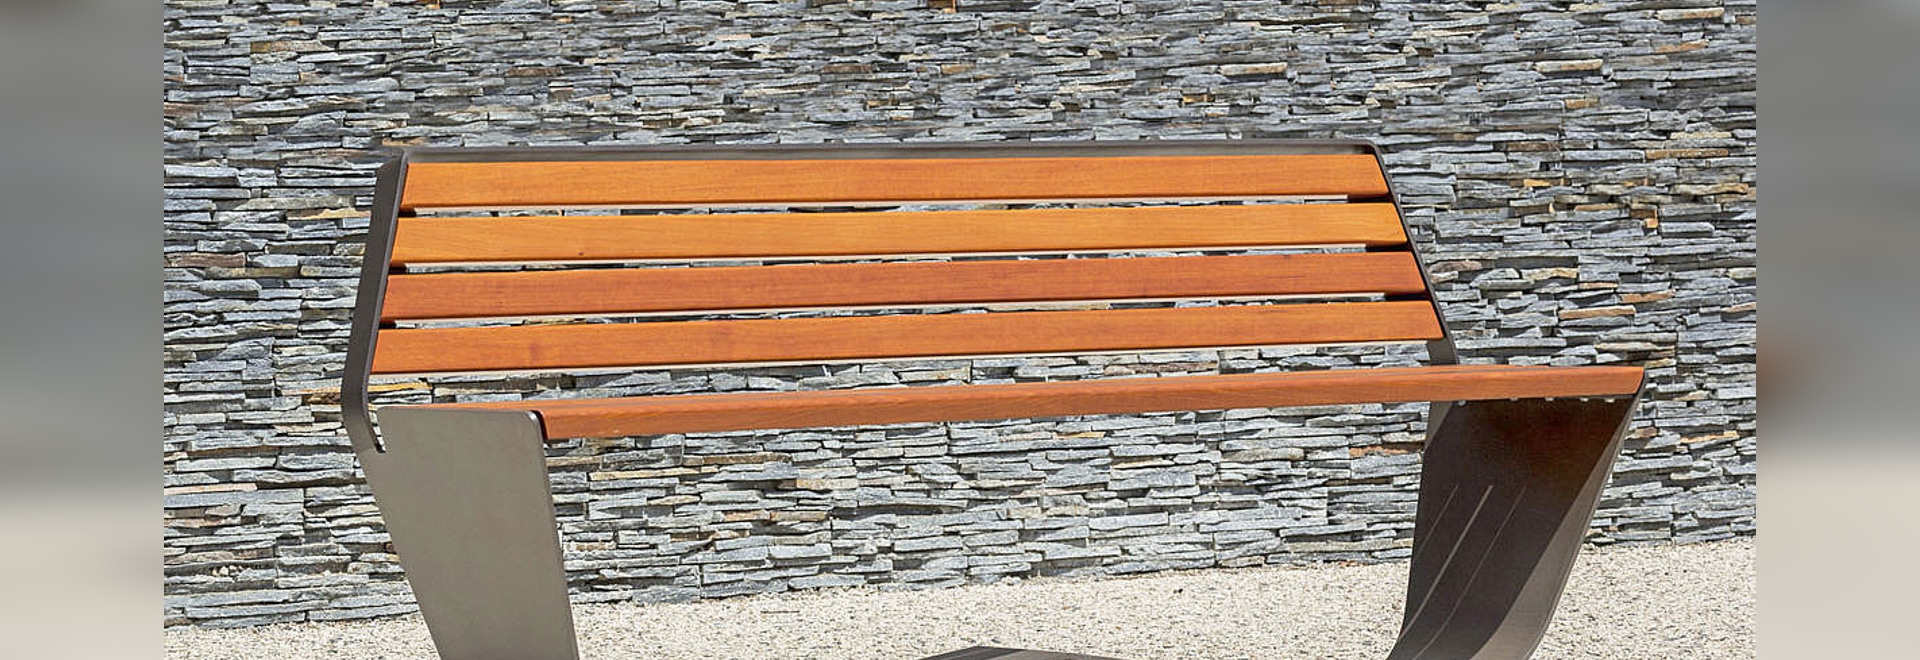 NEW KARMA Public bench (wood and steel)